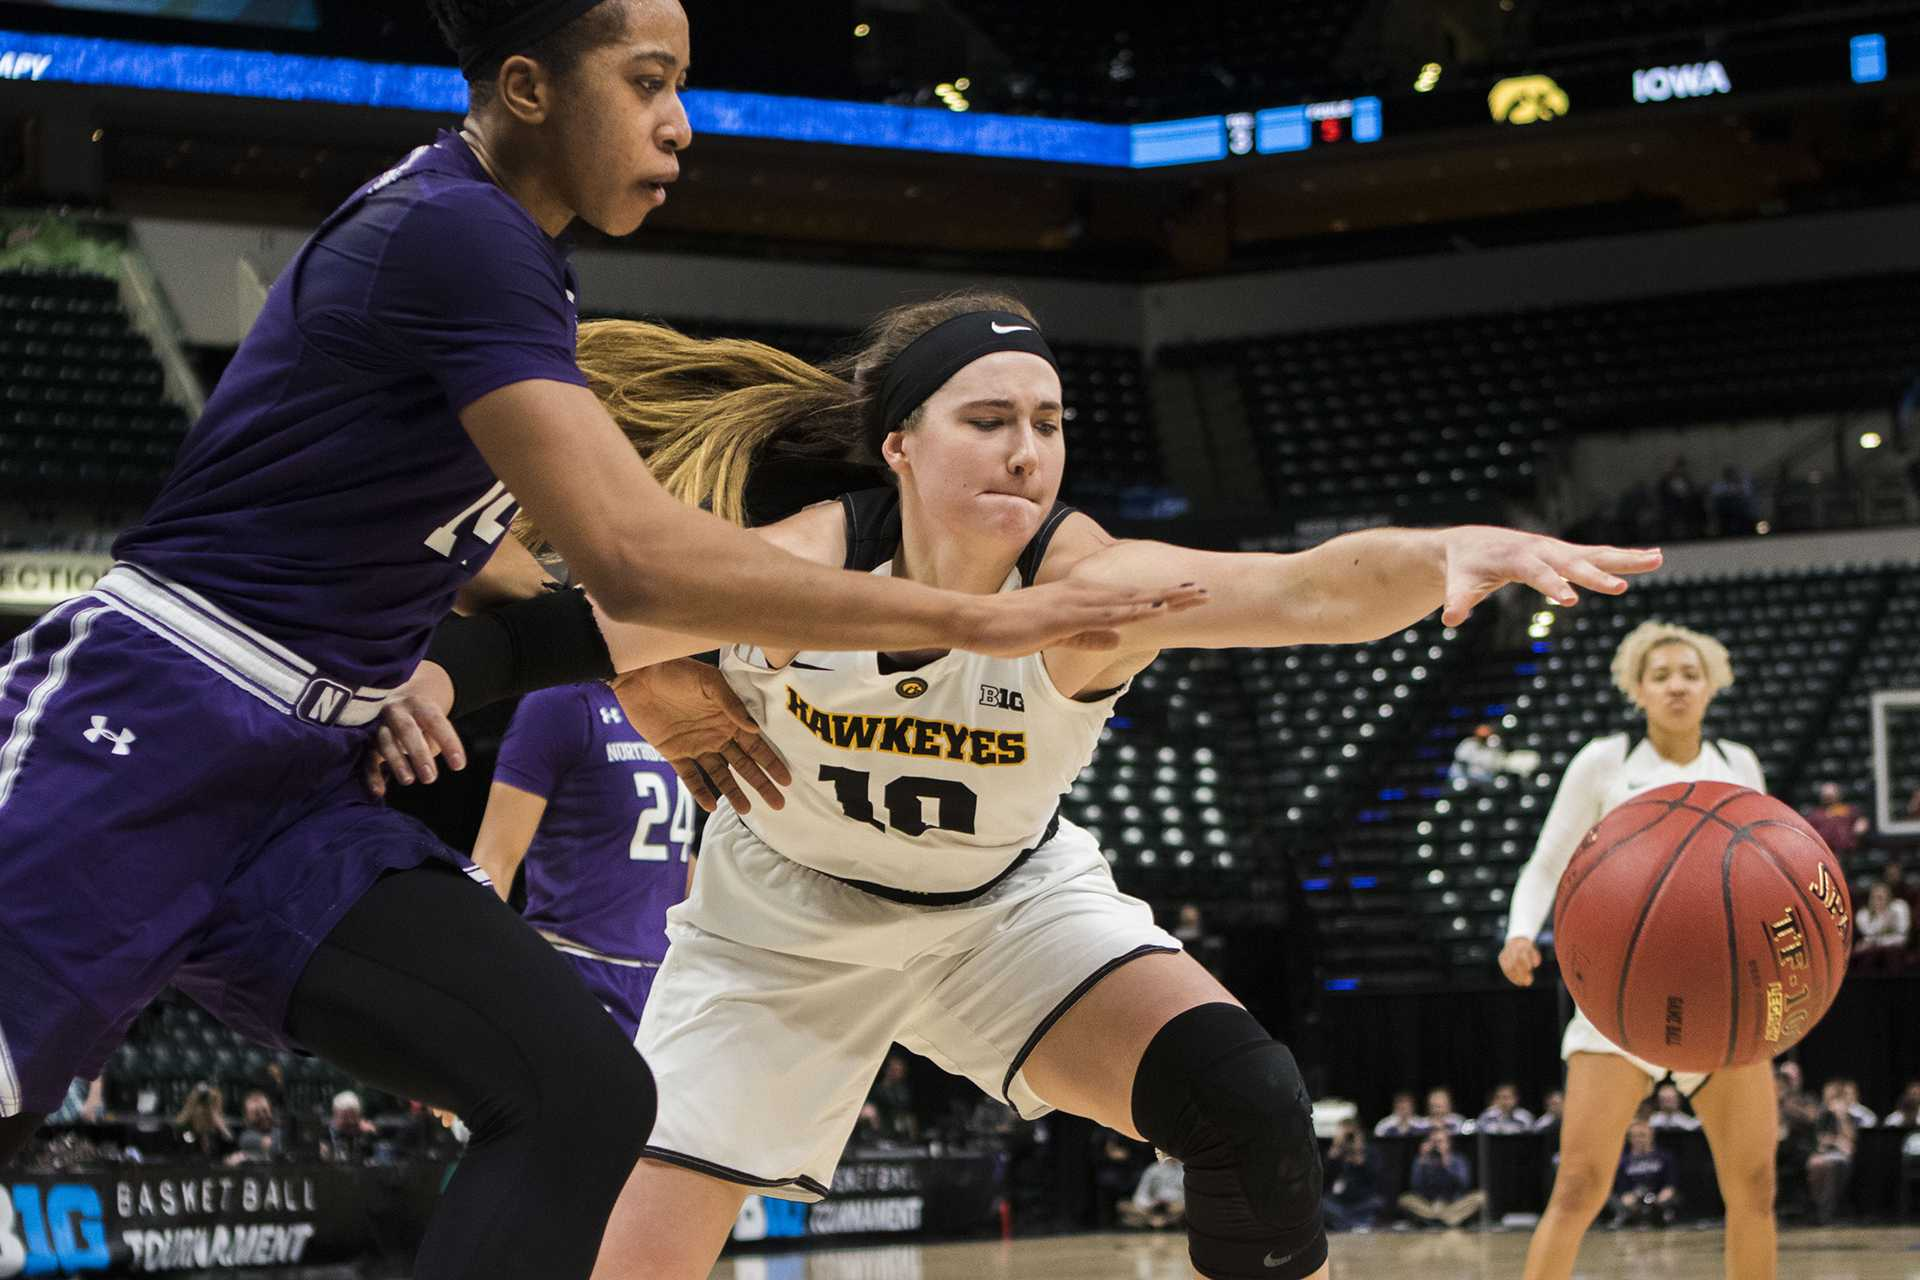 Iowa forward Megan Gustafson and Northwestern forward Pallas Kunaiya-Akpanah attempt to take control of the ball during the Iowa/Northwestern Big Ten tournament basketball game at Bankers Life Fieldhouse in Indianapolis on Thursday, March, 1, 2018. The Hawkeyes defeated the Wildcats, 55-45. Iowa takes on No.4 Minnesota on Friday. (Lily Smith/The Daily Iowan)